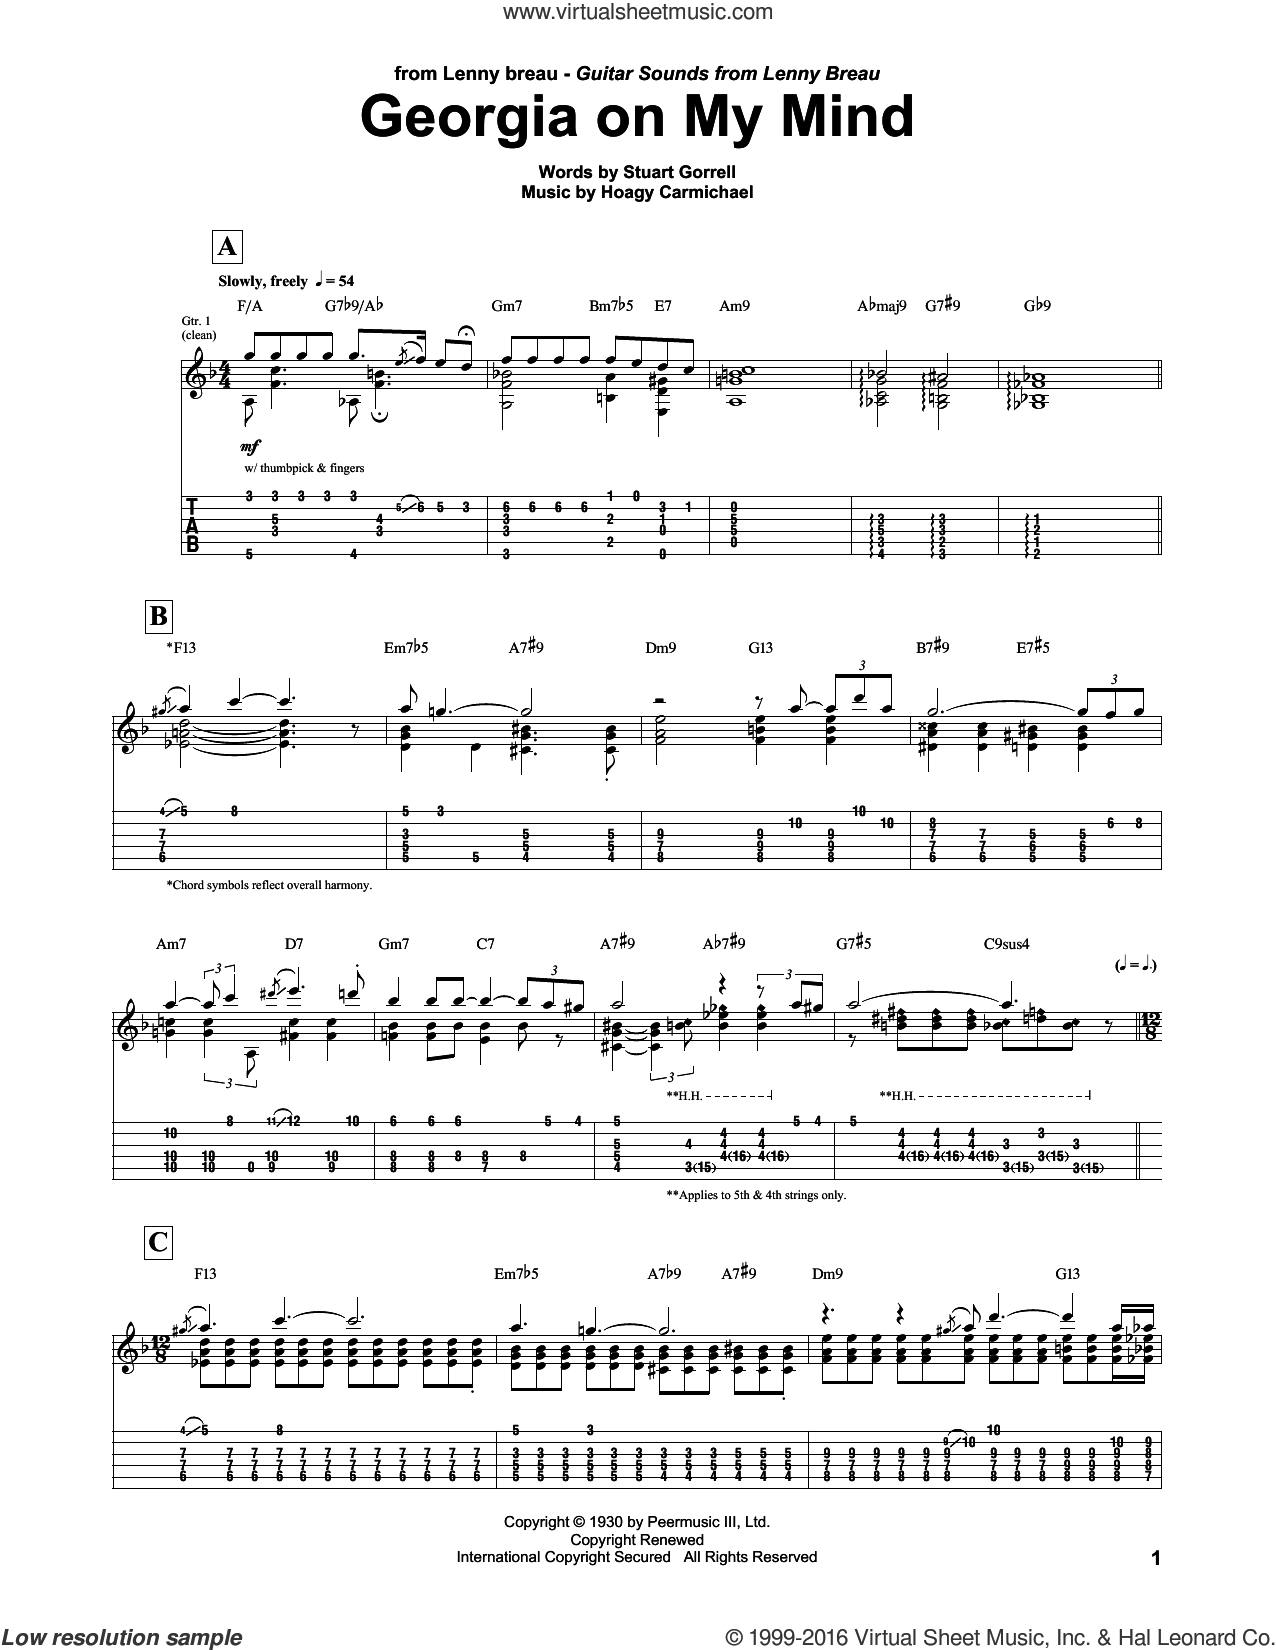 Georgia On My Mind sheet music for guitar (tablature) by Lenny Breau, Ray Charles, Willie Nelson, Hoagy Carmichael and Stuart Gorrell, intermediate skill level